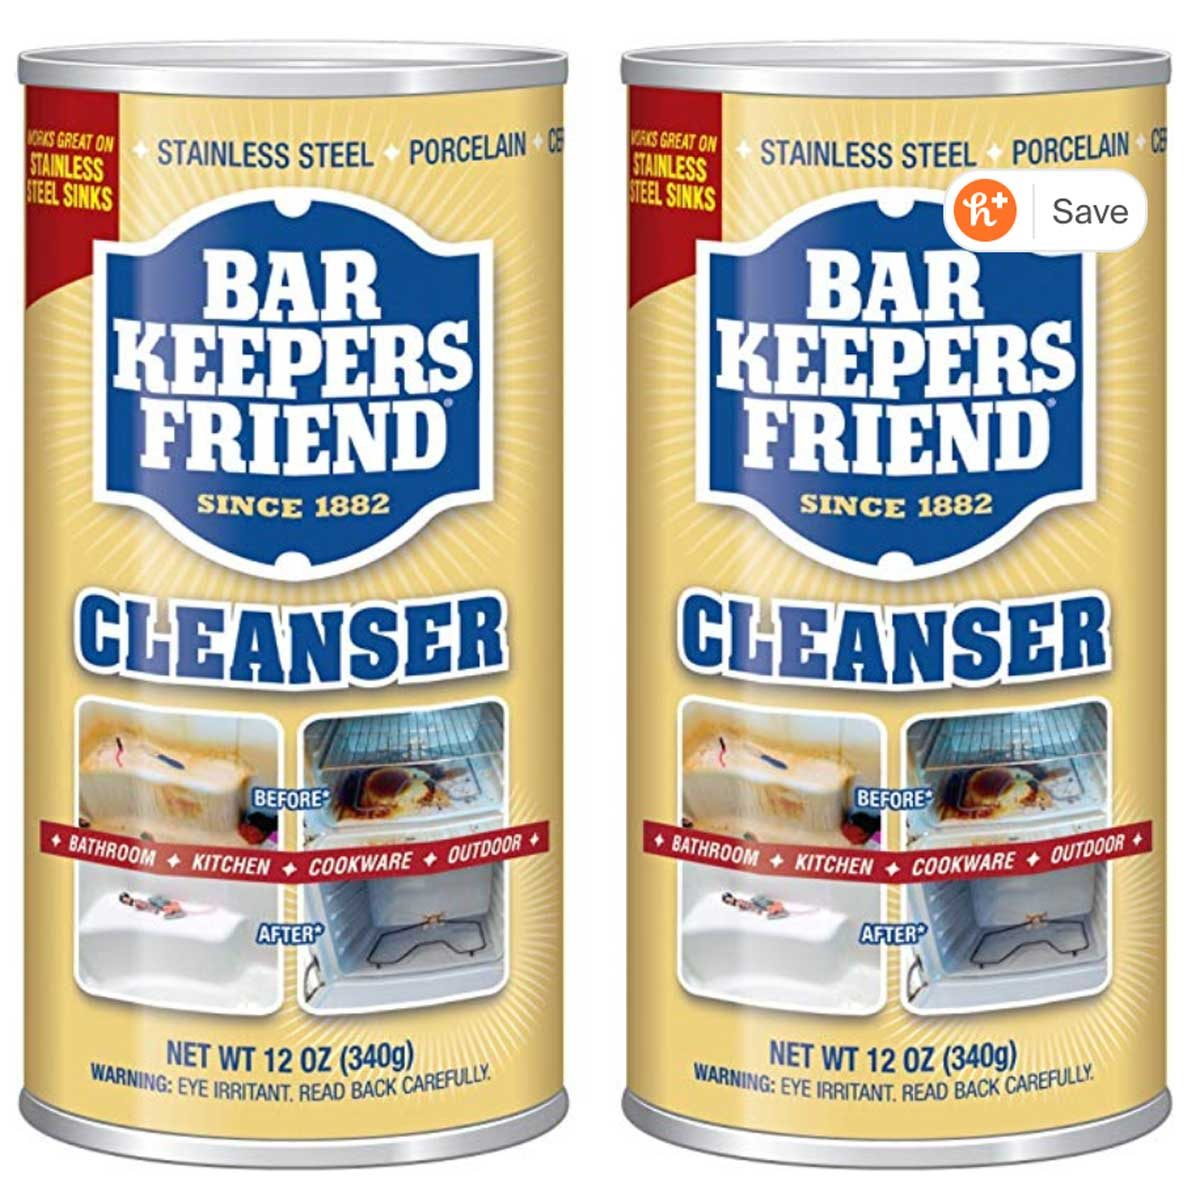 stainless steel bar keepers friend